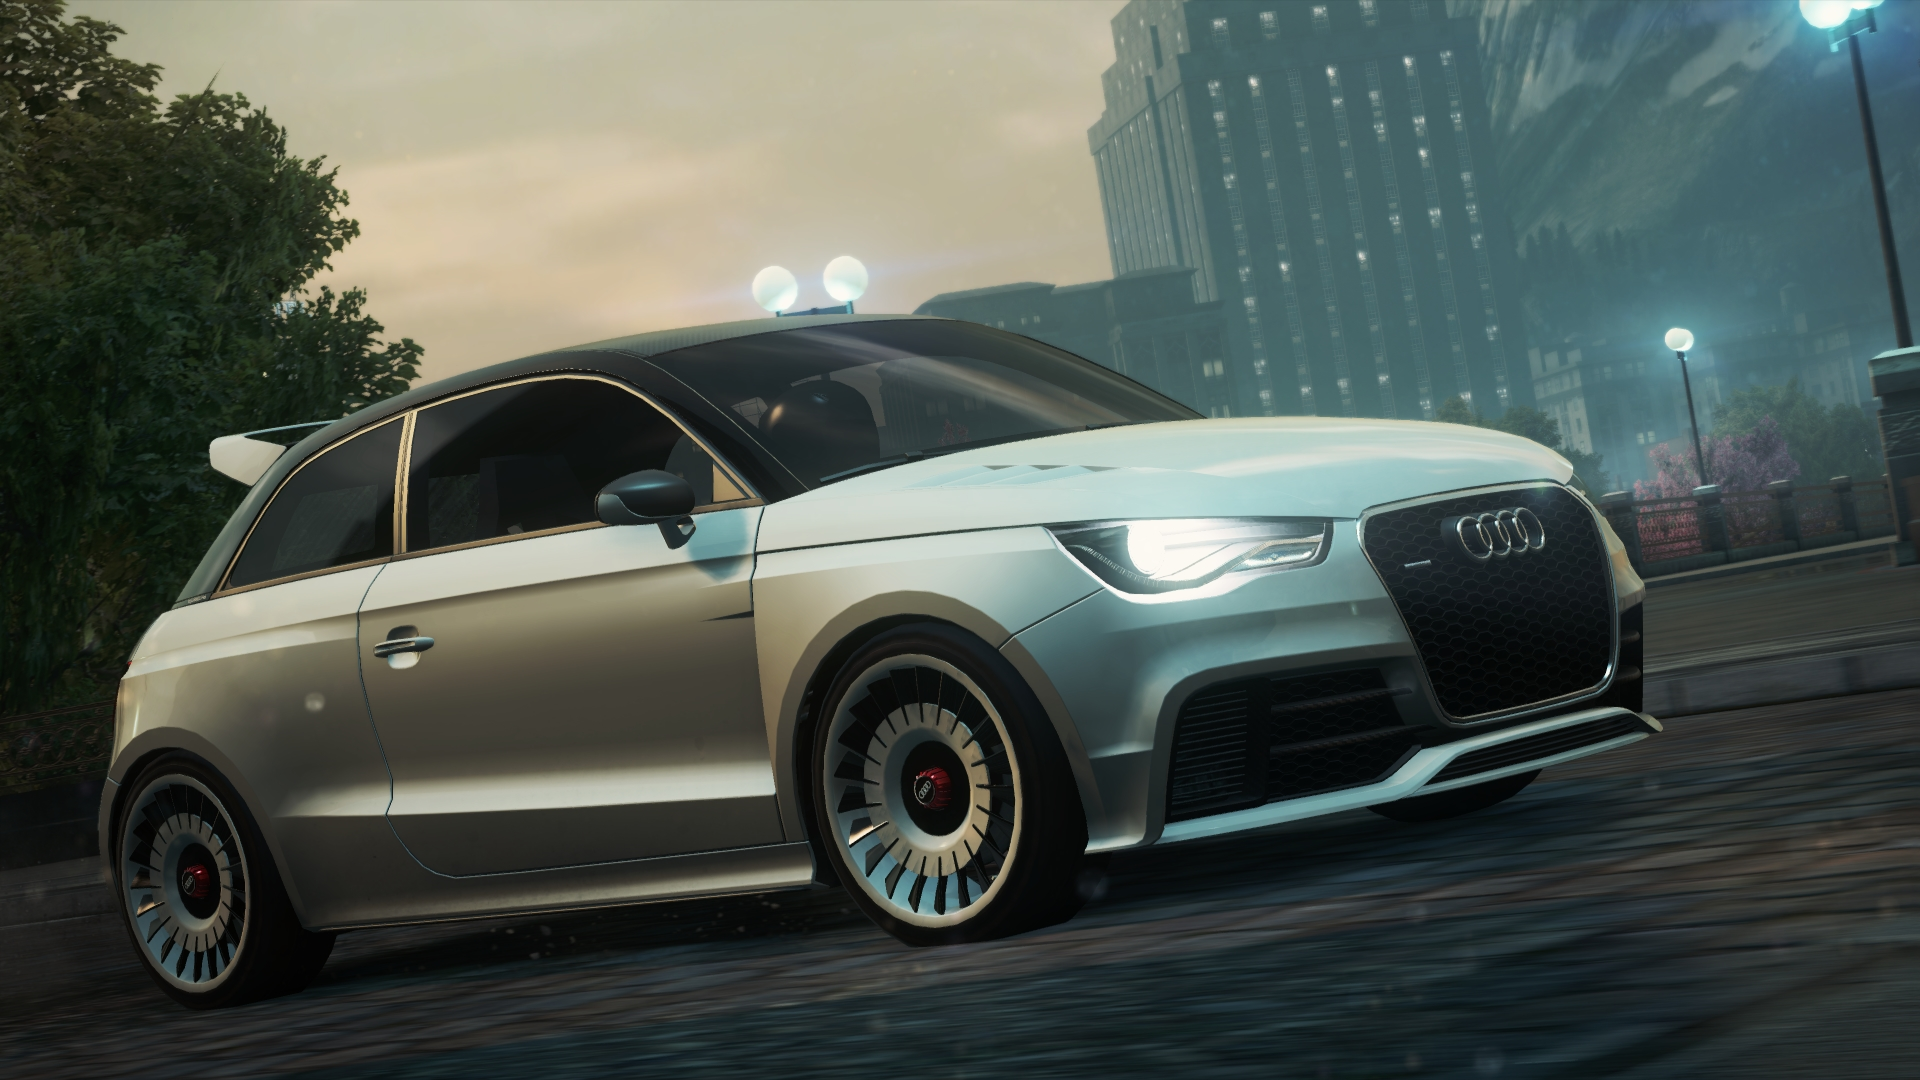 Audi A Clubsport Quattro Need For Speed Wiki FANDOM Powered By - Audi wiki